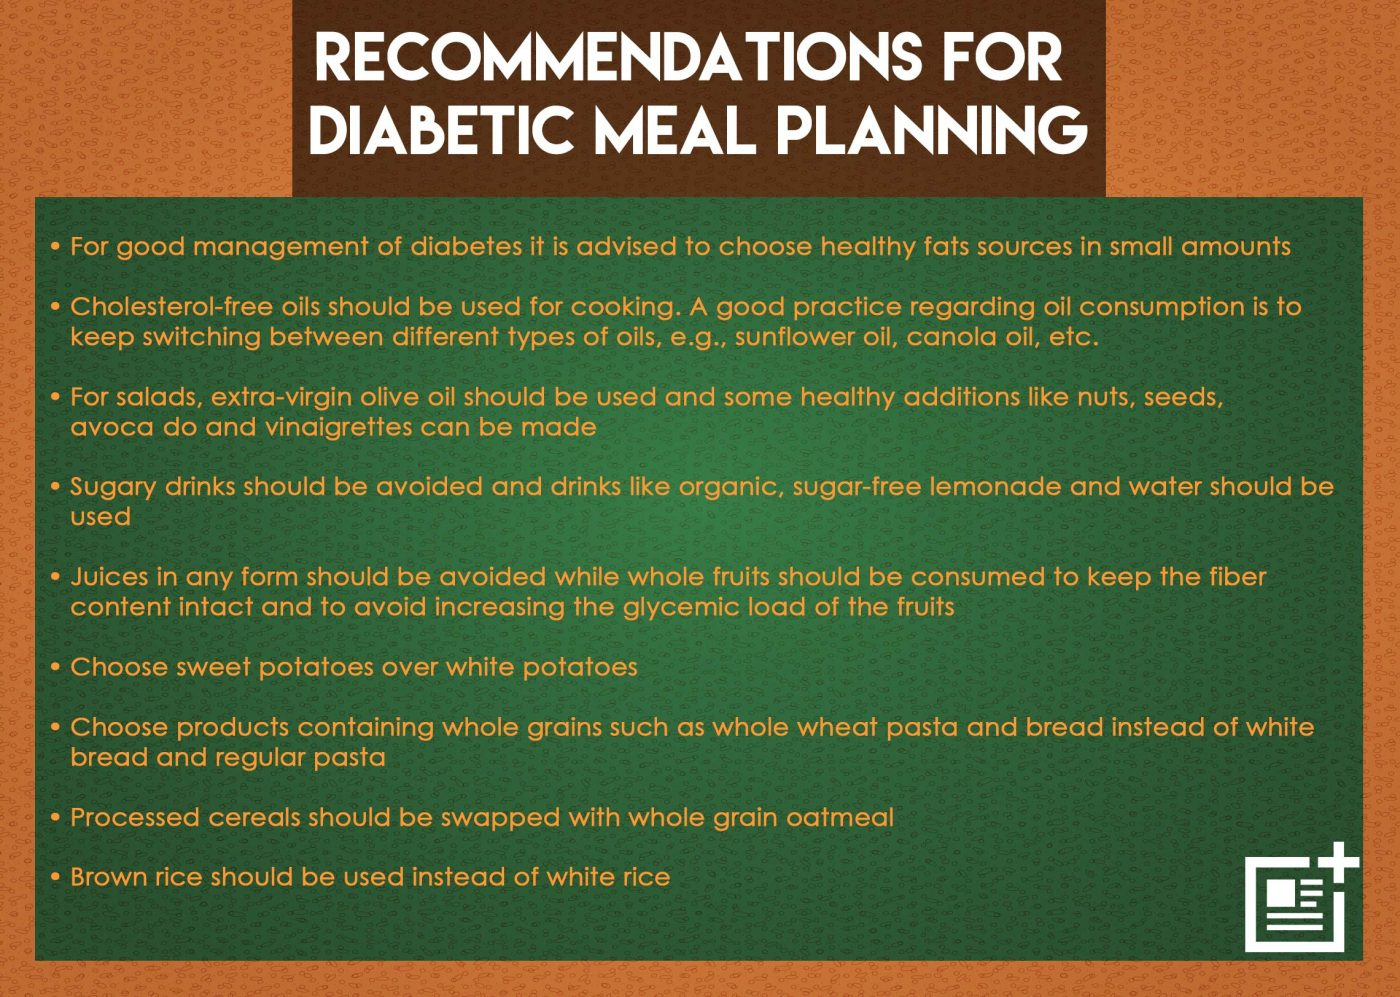 recommendations-for-diabetic-meal-planning